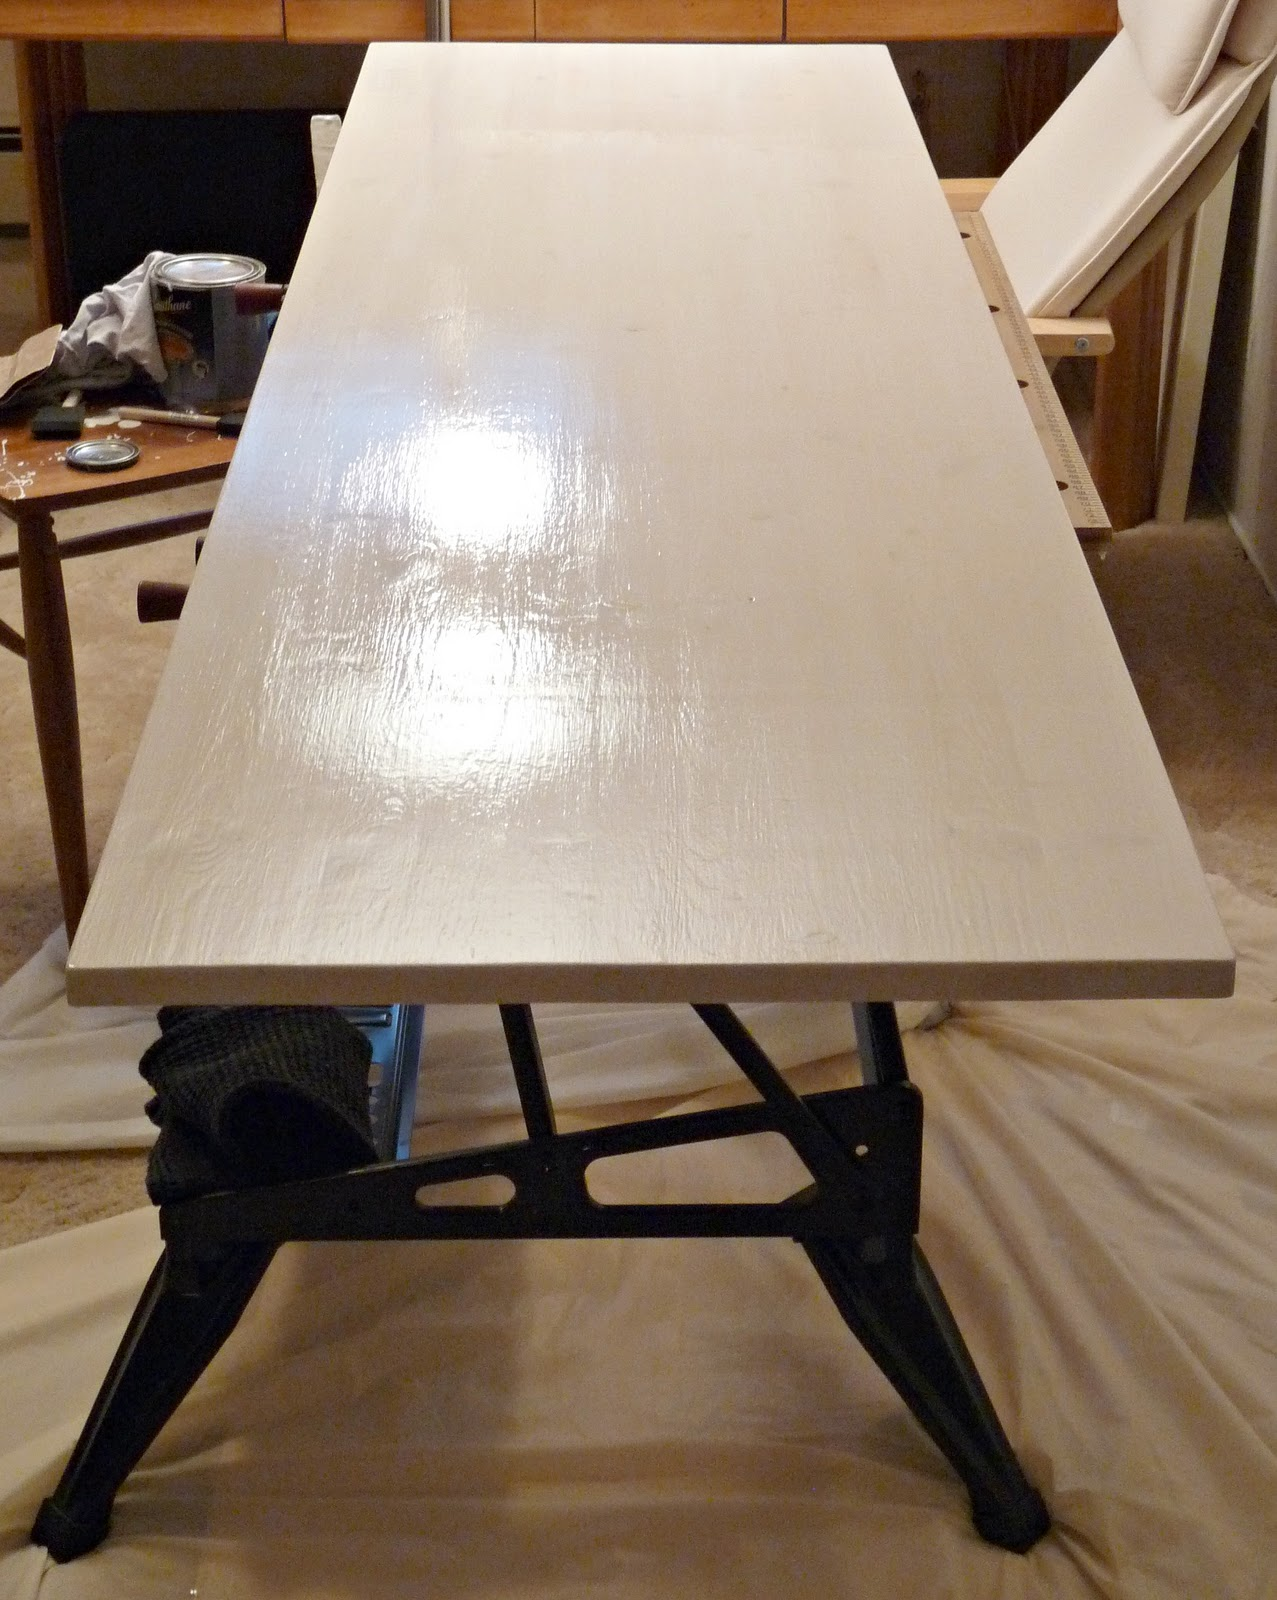 Remodelaholic | How To Build a Desk With Wood Top and ...